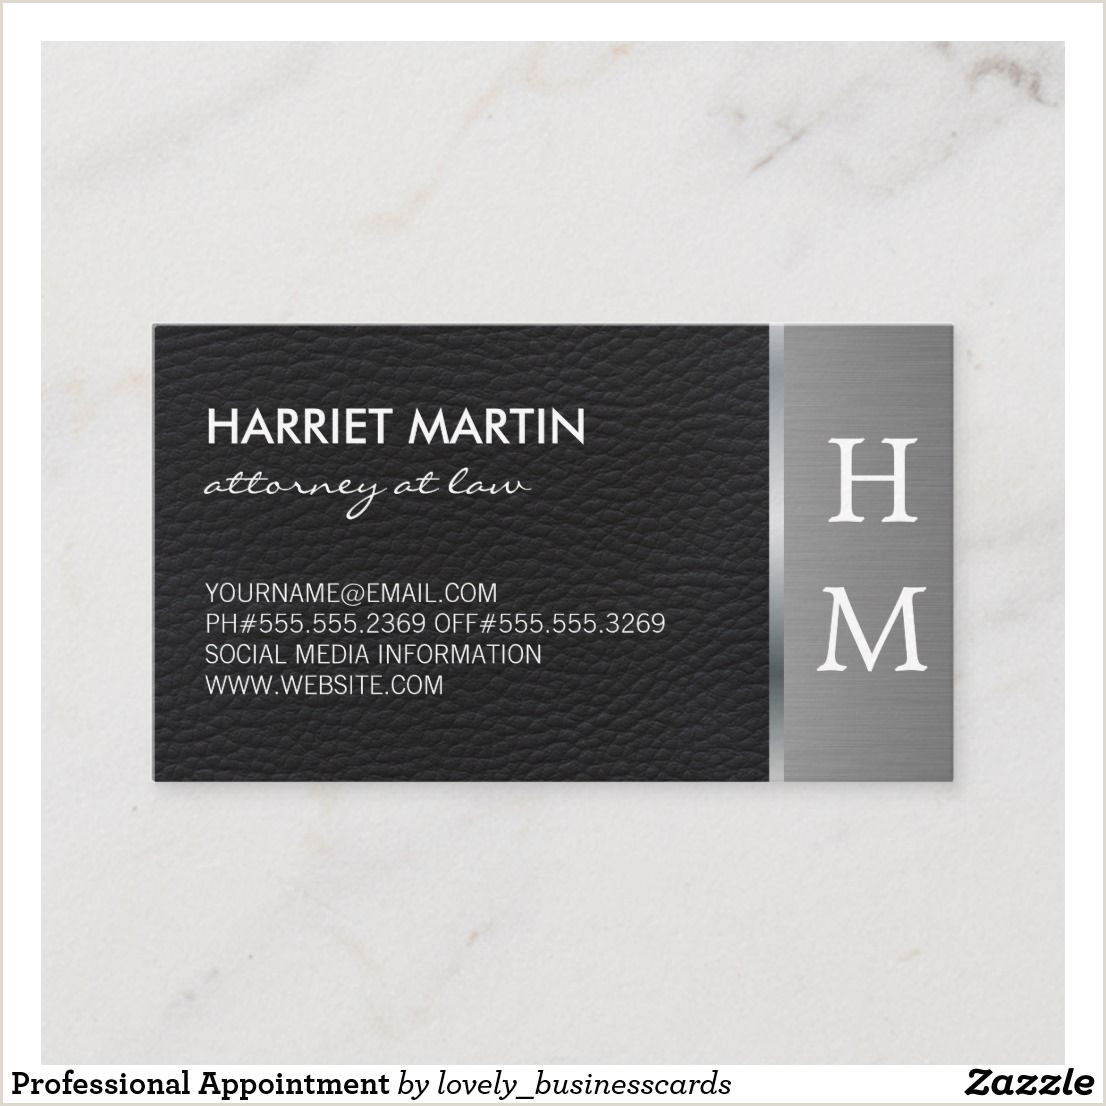 Where To Have Business Cards Made Professional Appointment Zazzle